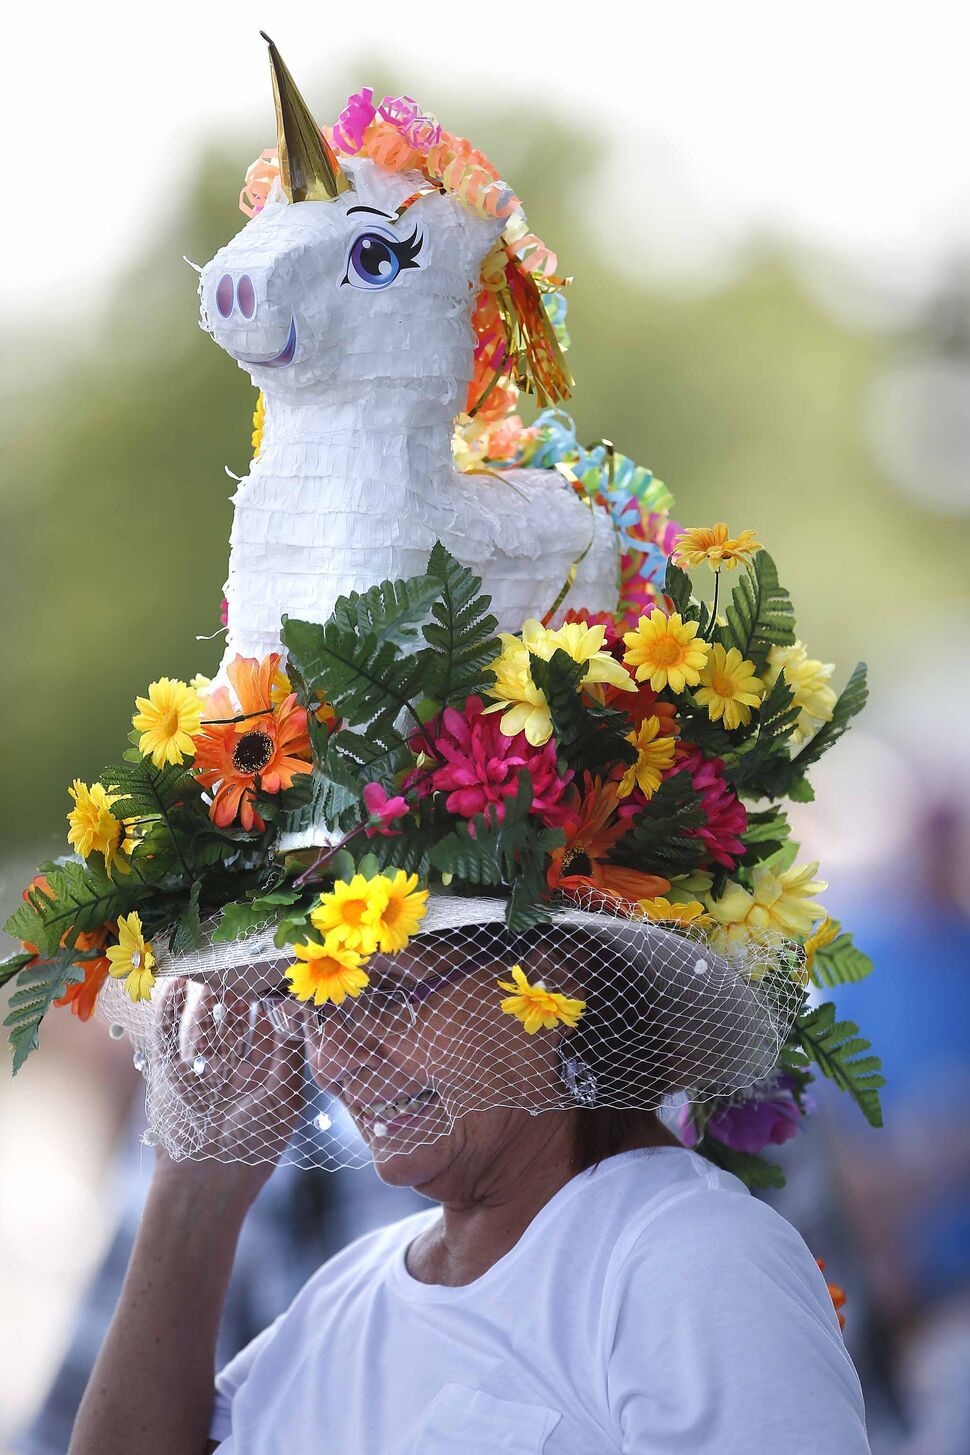 A closer look at Jamie Bremner's unicorn hat.